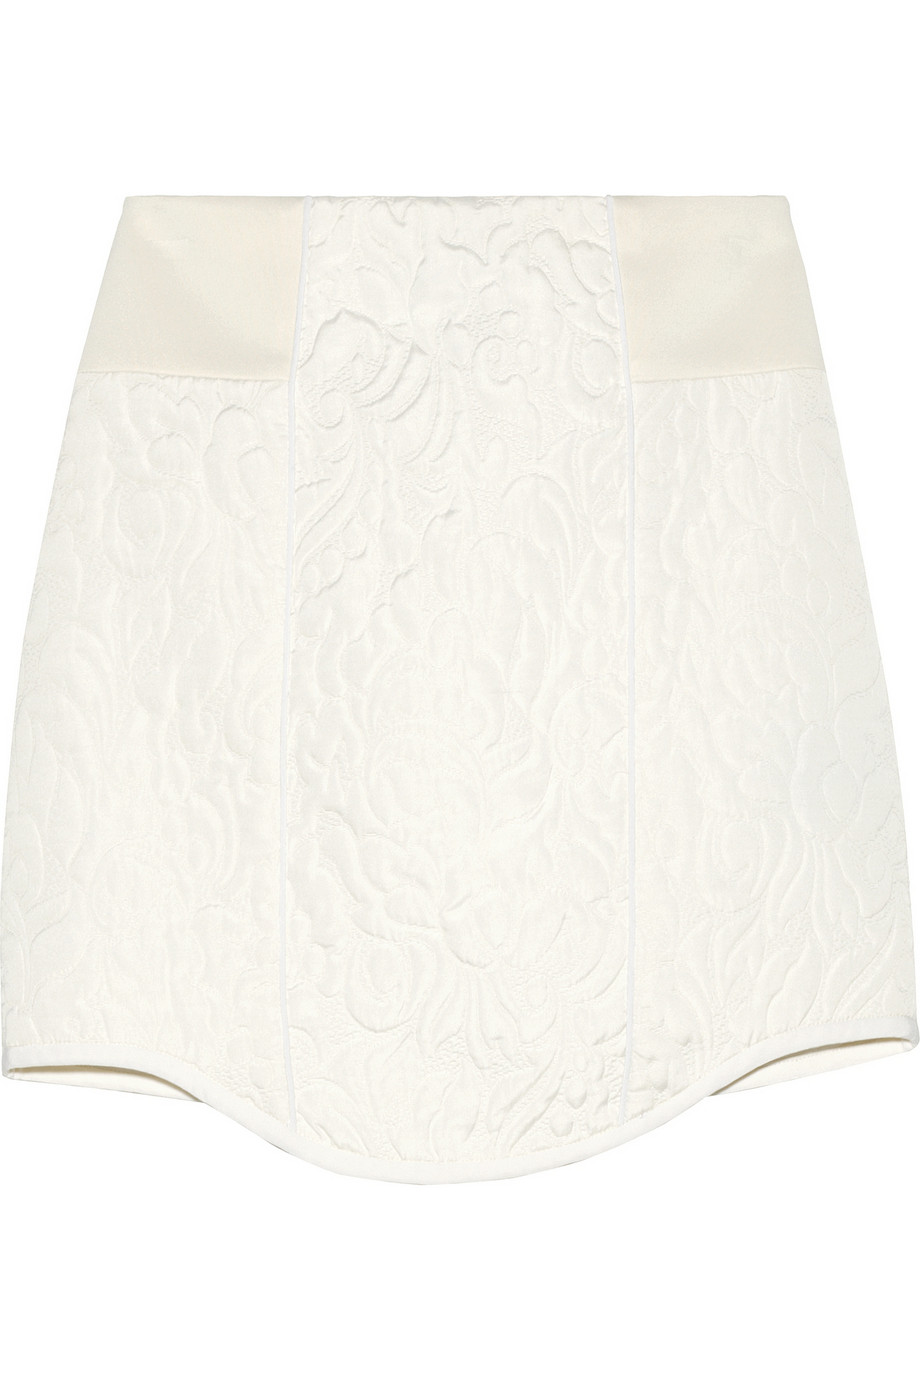 Katrin paneled matelassé mini skirt | Tibi | 60% off | THE OUTNET